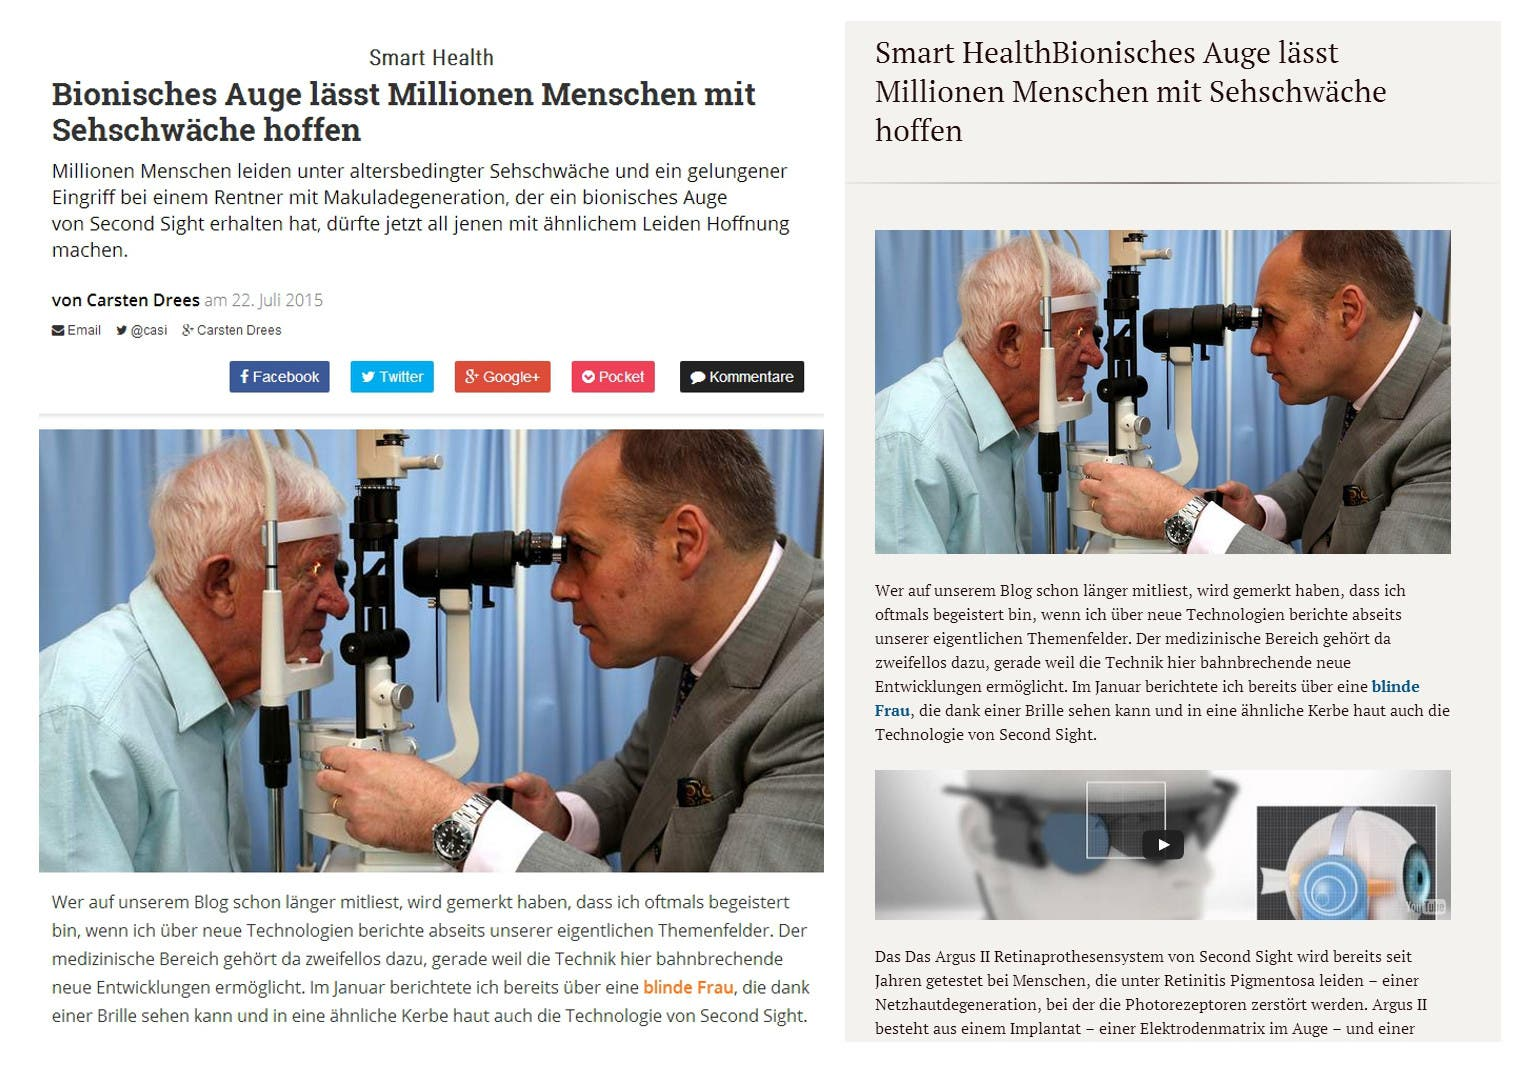 Links eine Website, rechts optimiert mit Clearly